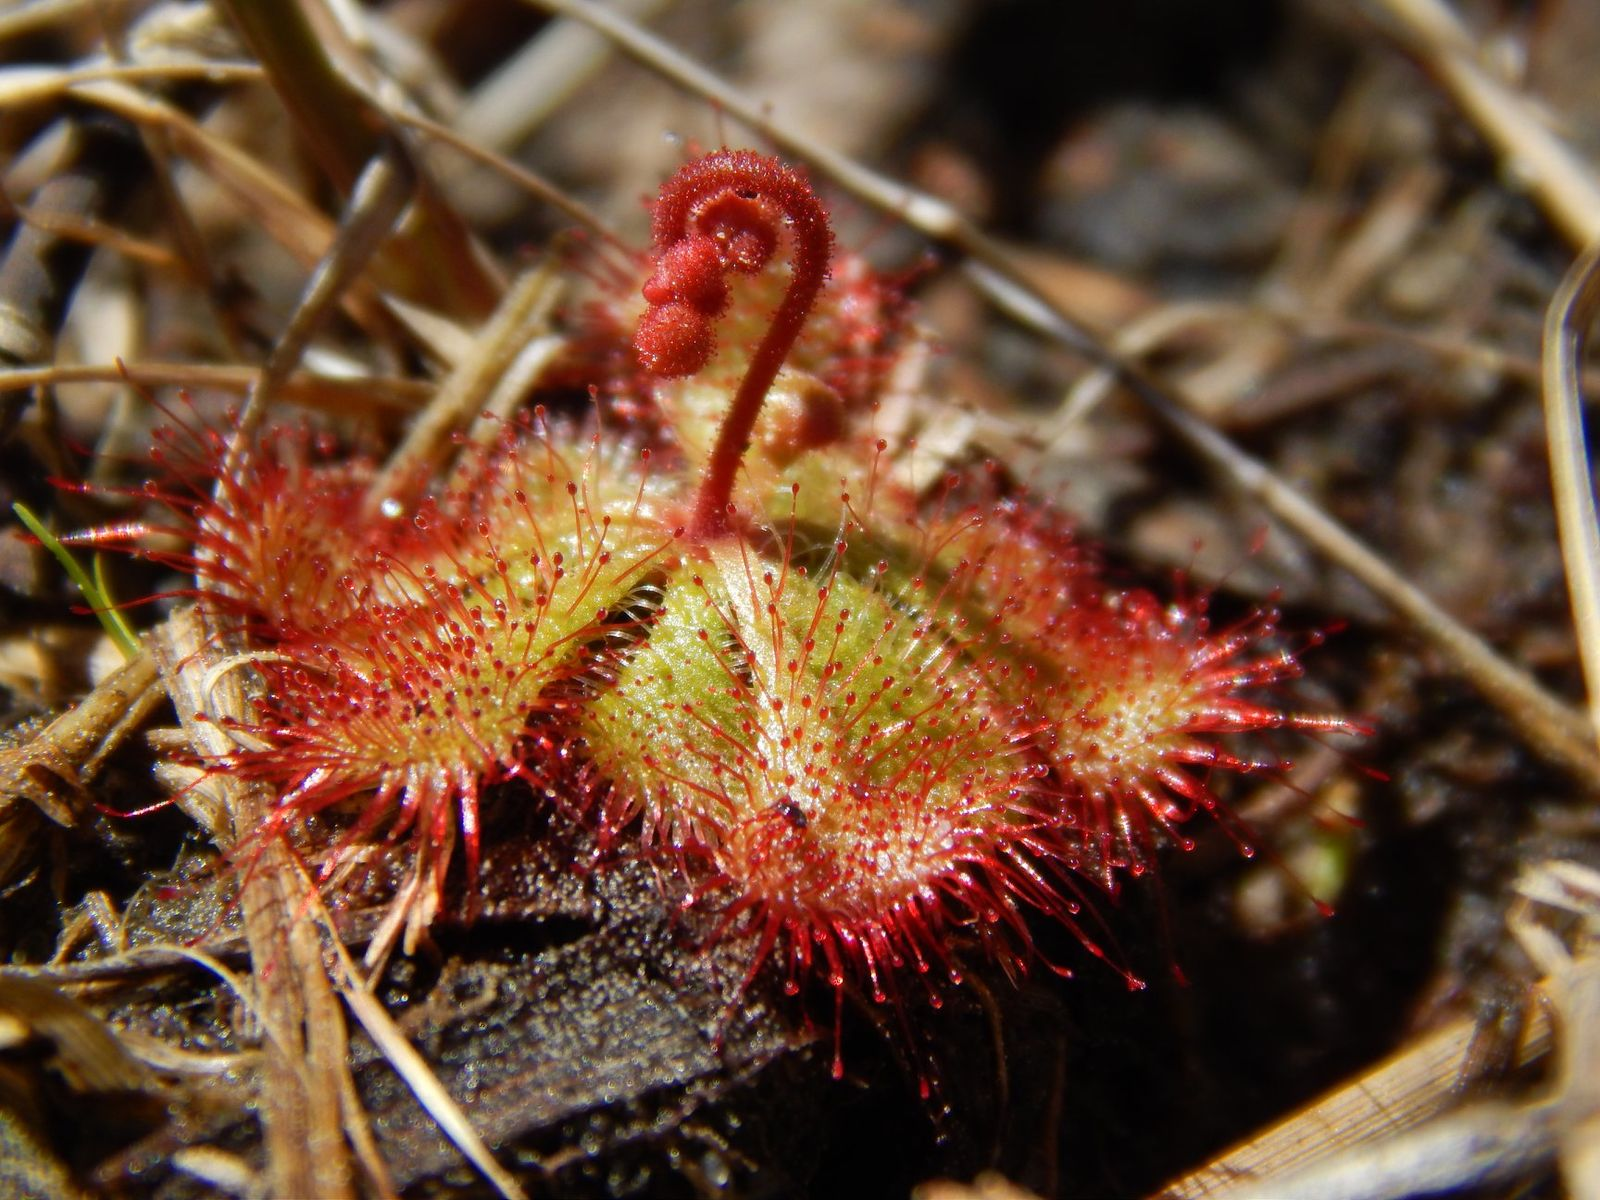 Dwarf sundew (Courtesy of Maryland Department of Natural Resources)